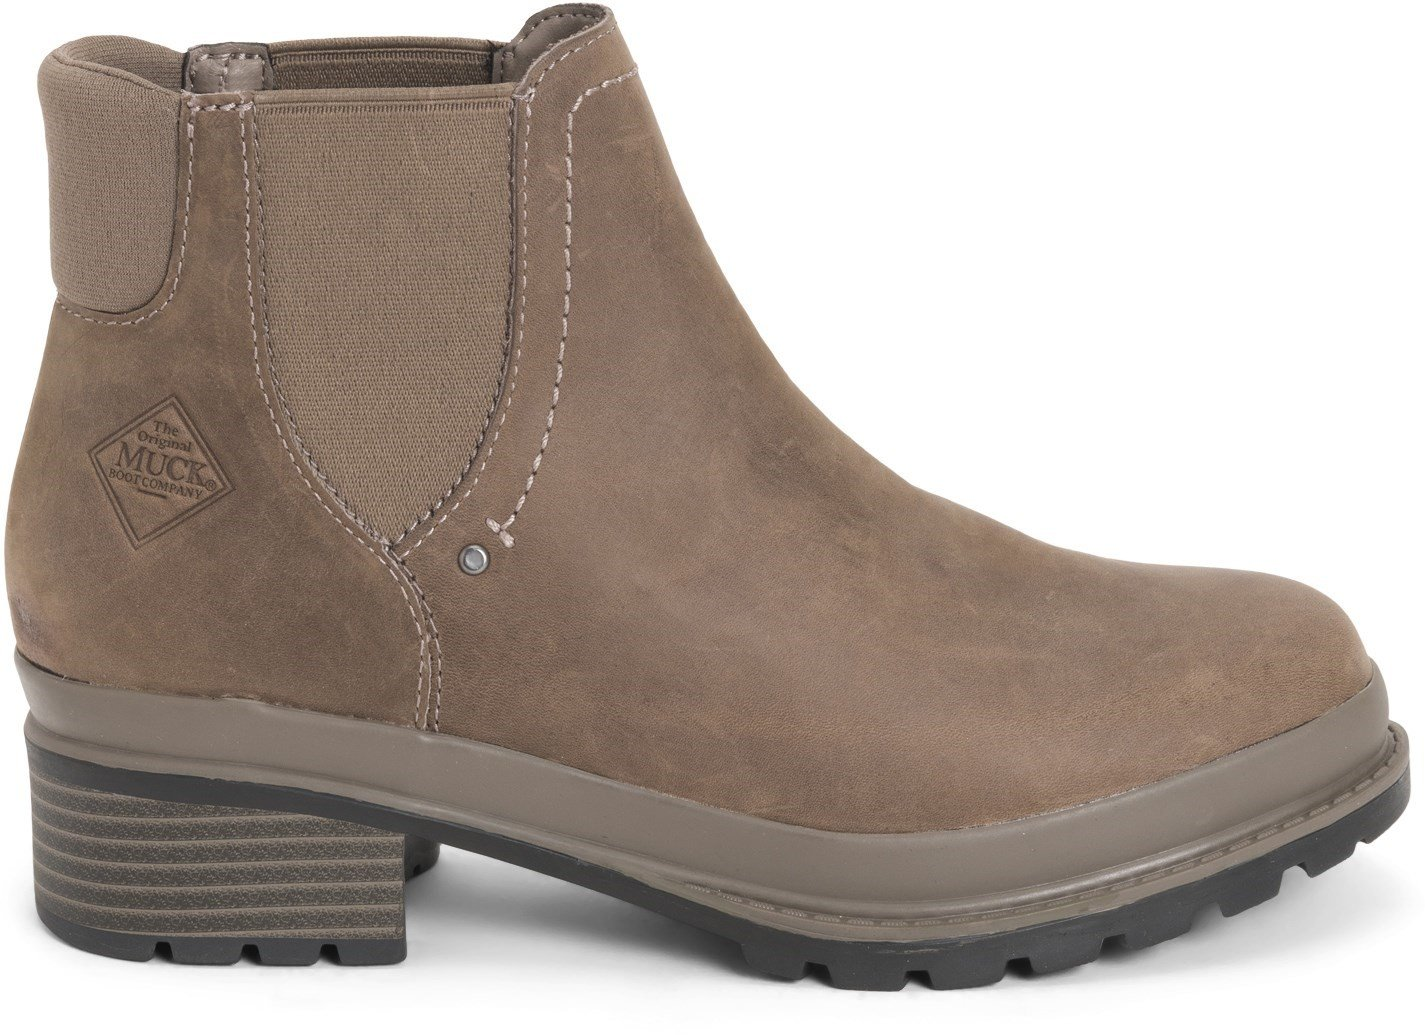 Muck Boots Women's Liberty Chelsea Boot Various Colours 31762 - Taupe 3